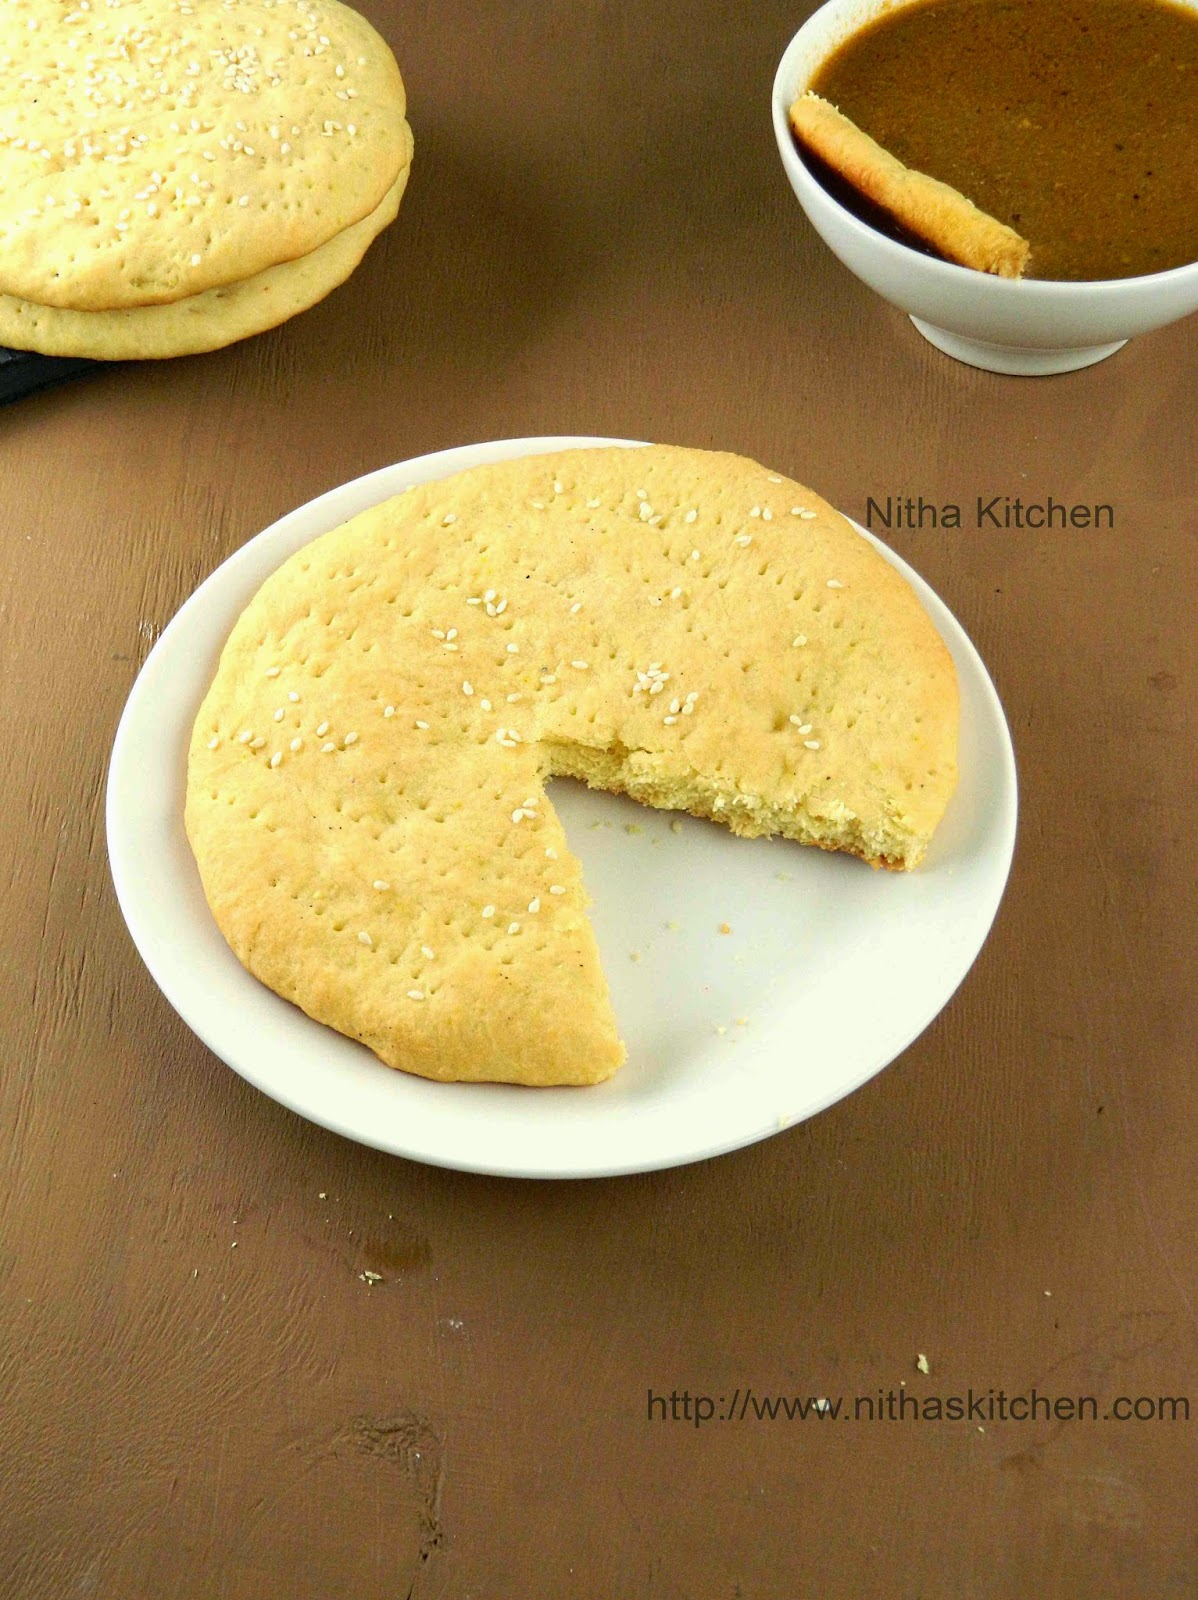 Sheermal | Shirmal | Saffron Flavored Flat Bread